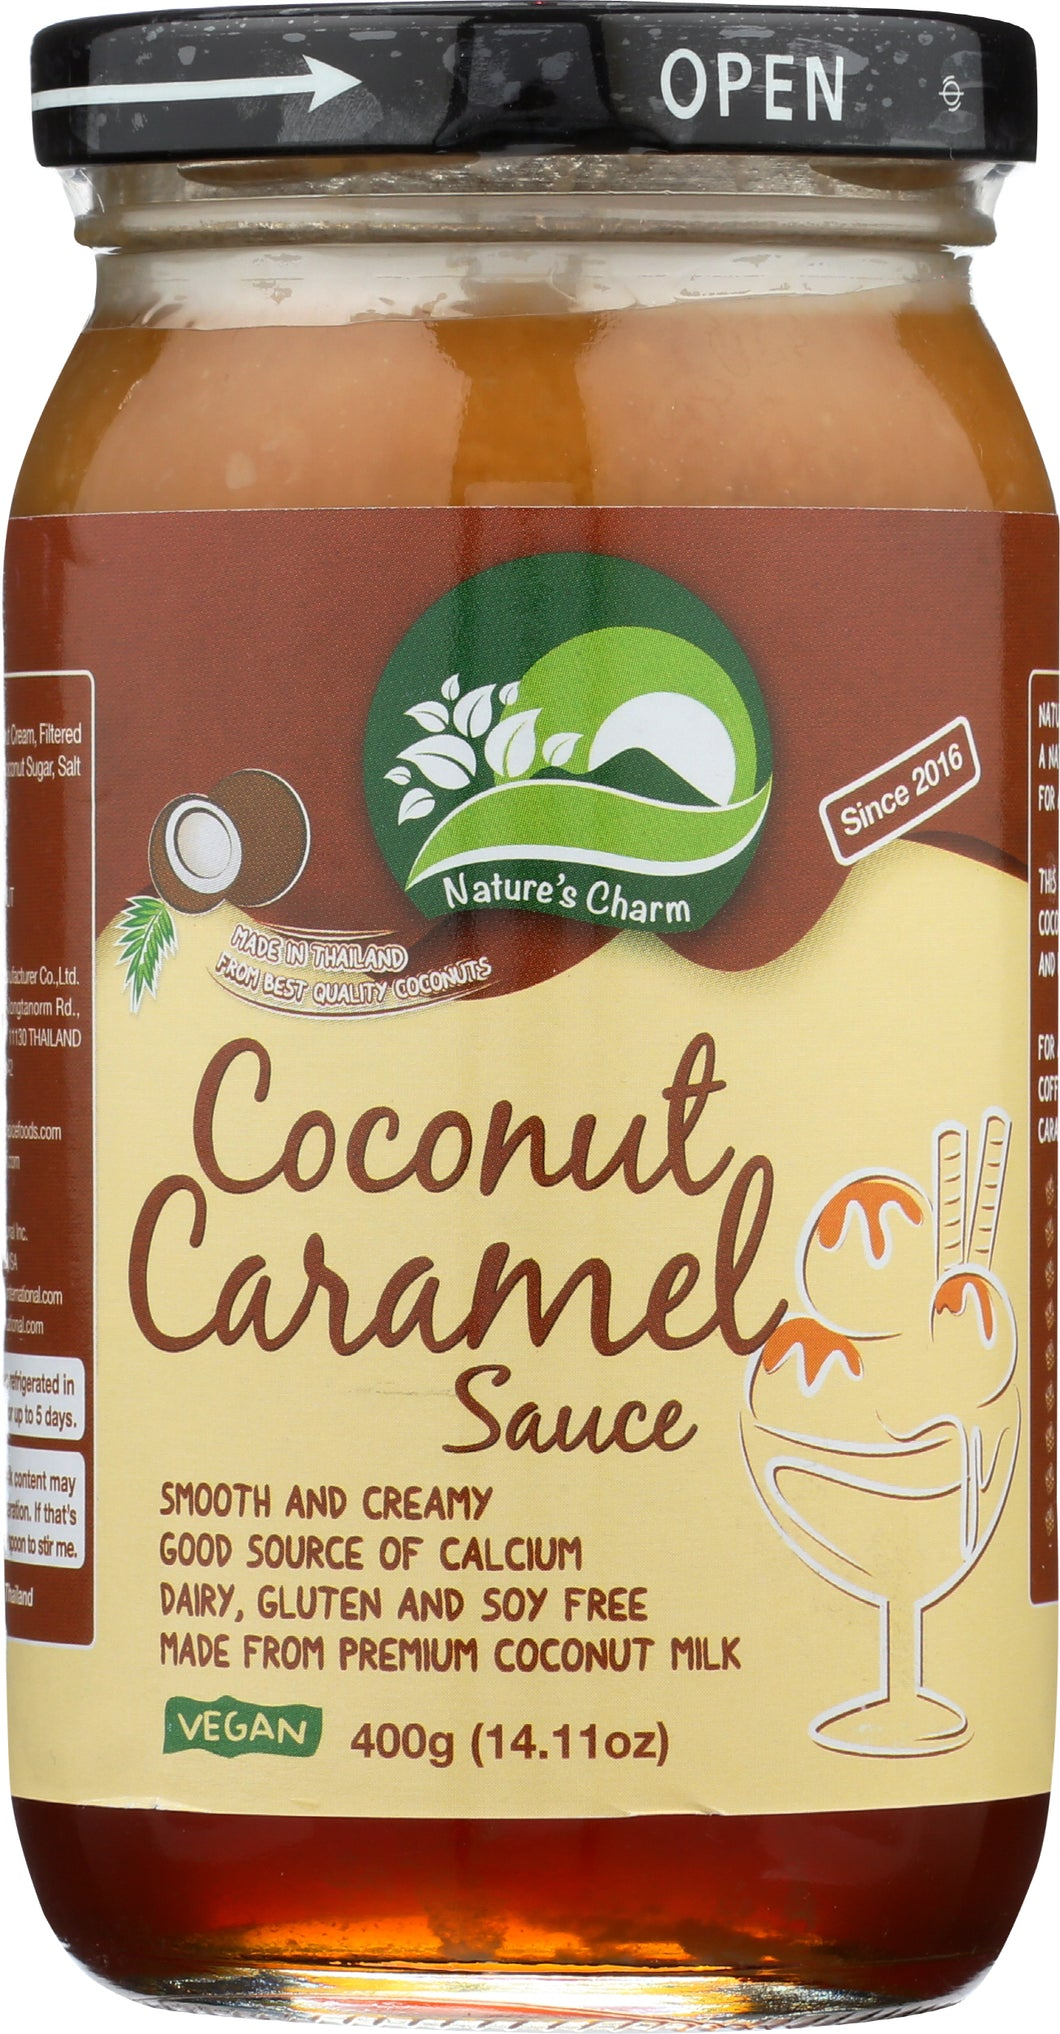 Nature's Charm Coconut Caramel Sauce (25% OFF)